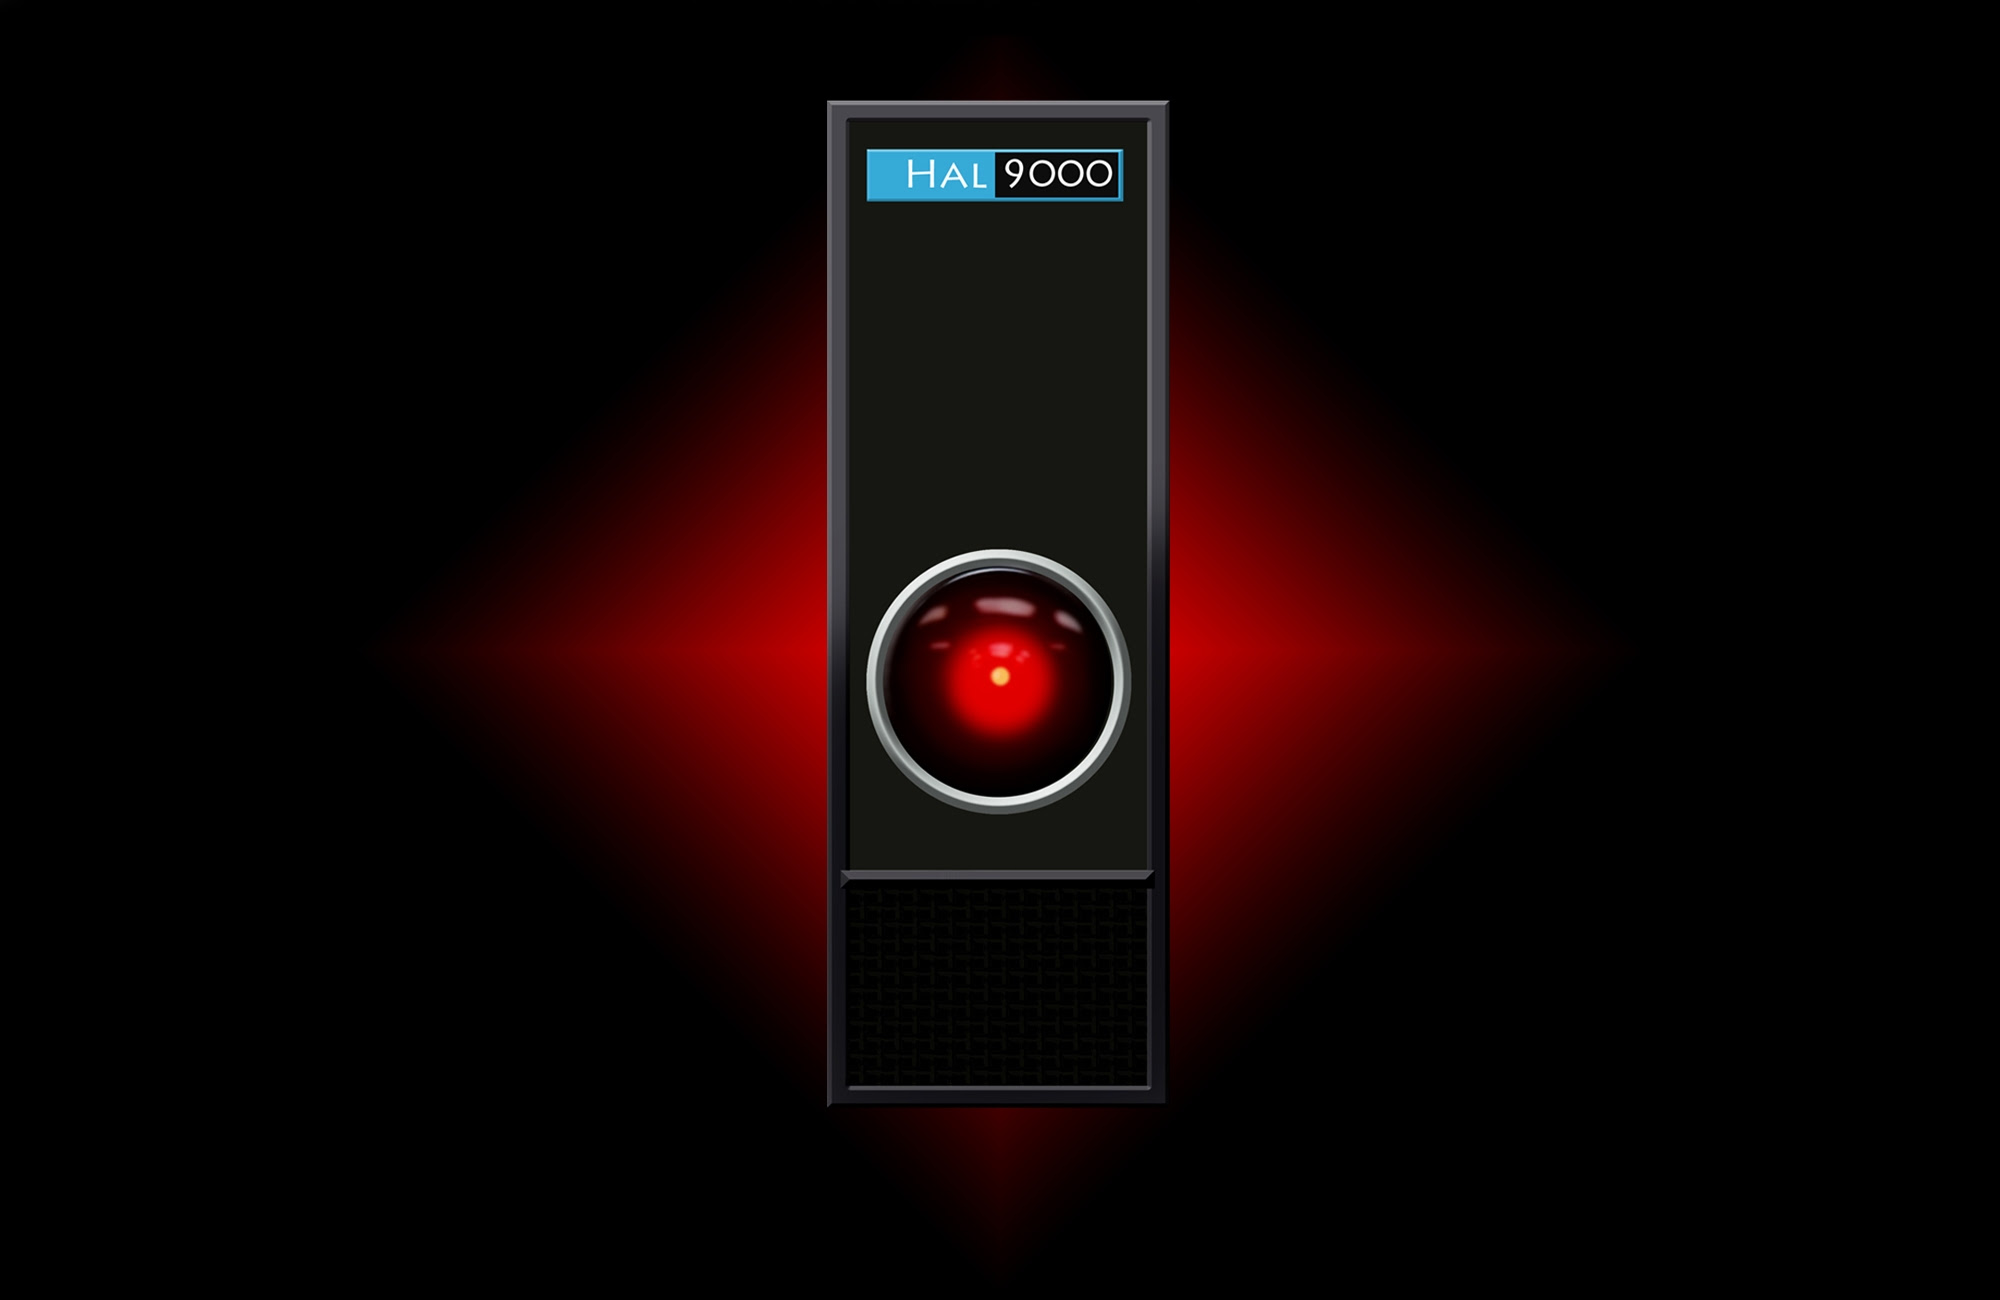 2001 A Space Odyssey Hal9000 2000x1300 Wallpaper High Quality